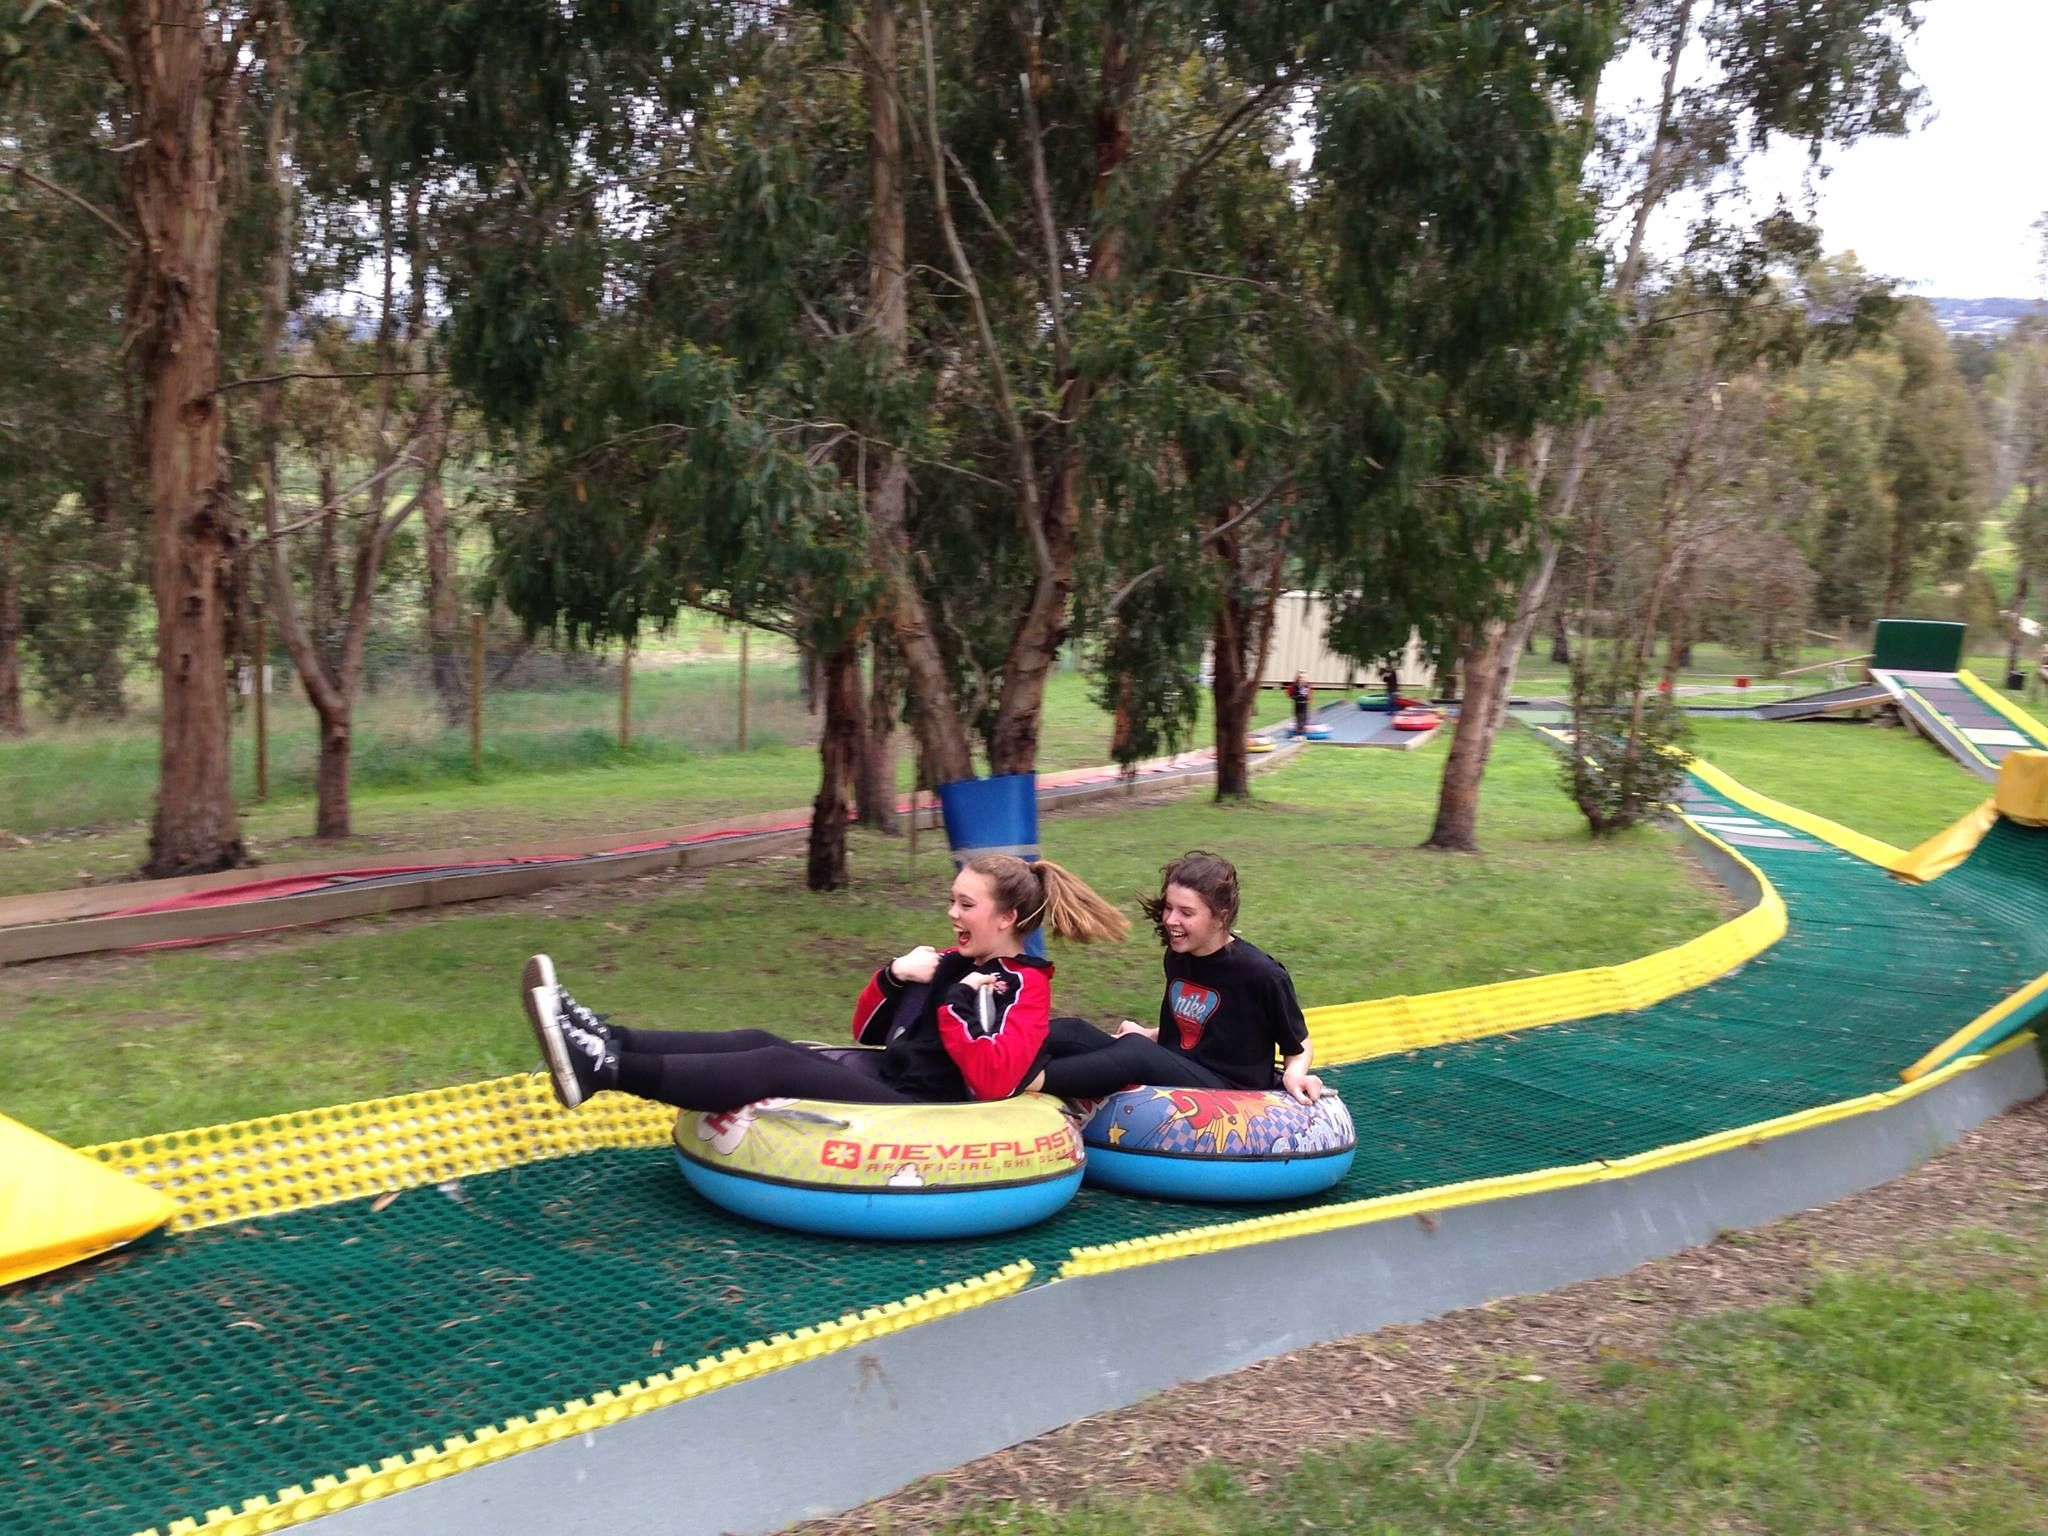 Having a great fun in Tasmania with TUBBY slides neveplast